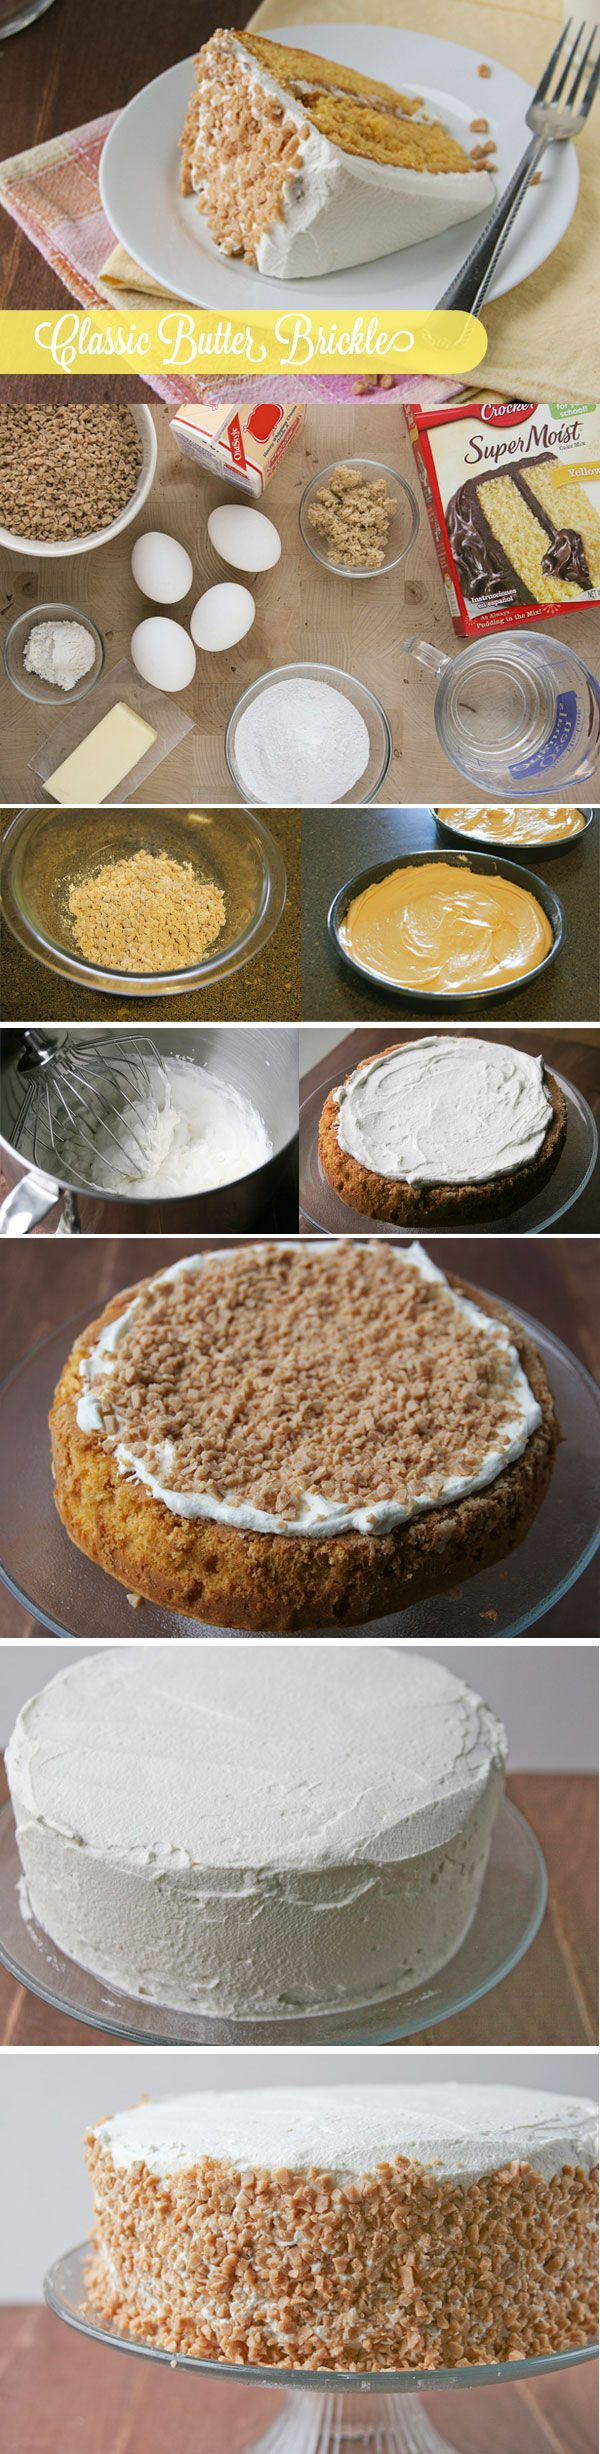 Remember this retro recipe favorite? If you ever enjoyed Betty's Cutter Brickle cake mix, you'll love this DIY modern spin made with a box of yellow mix, butterscotch pudding instant pudding and toffee bits. Click through for step-by-step photos and instructions!